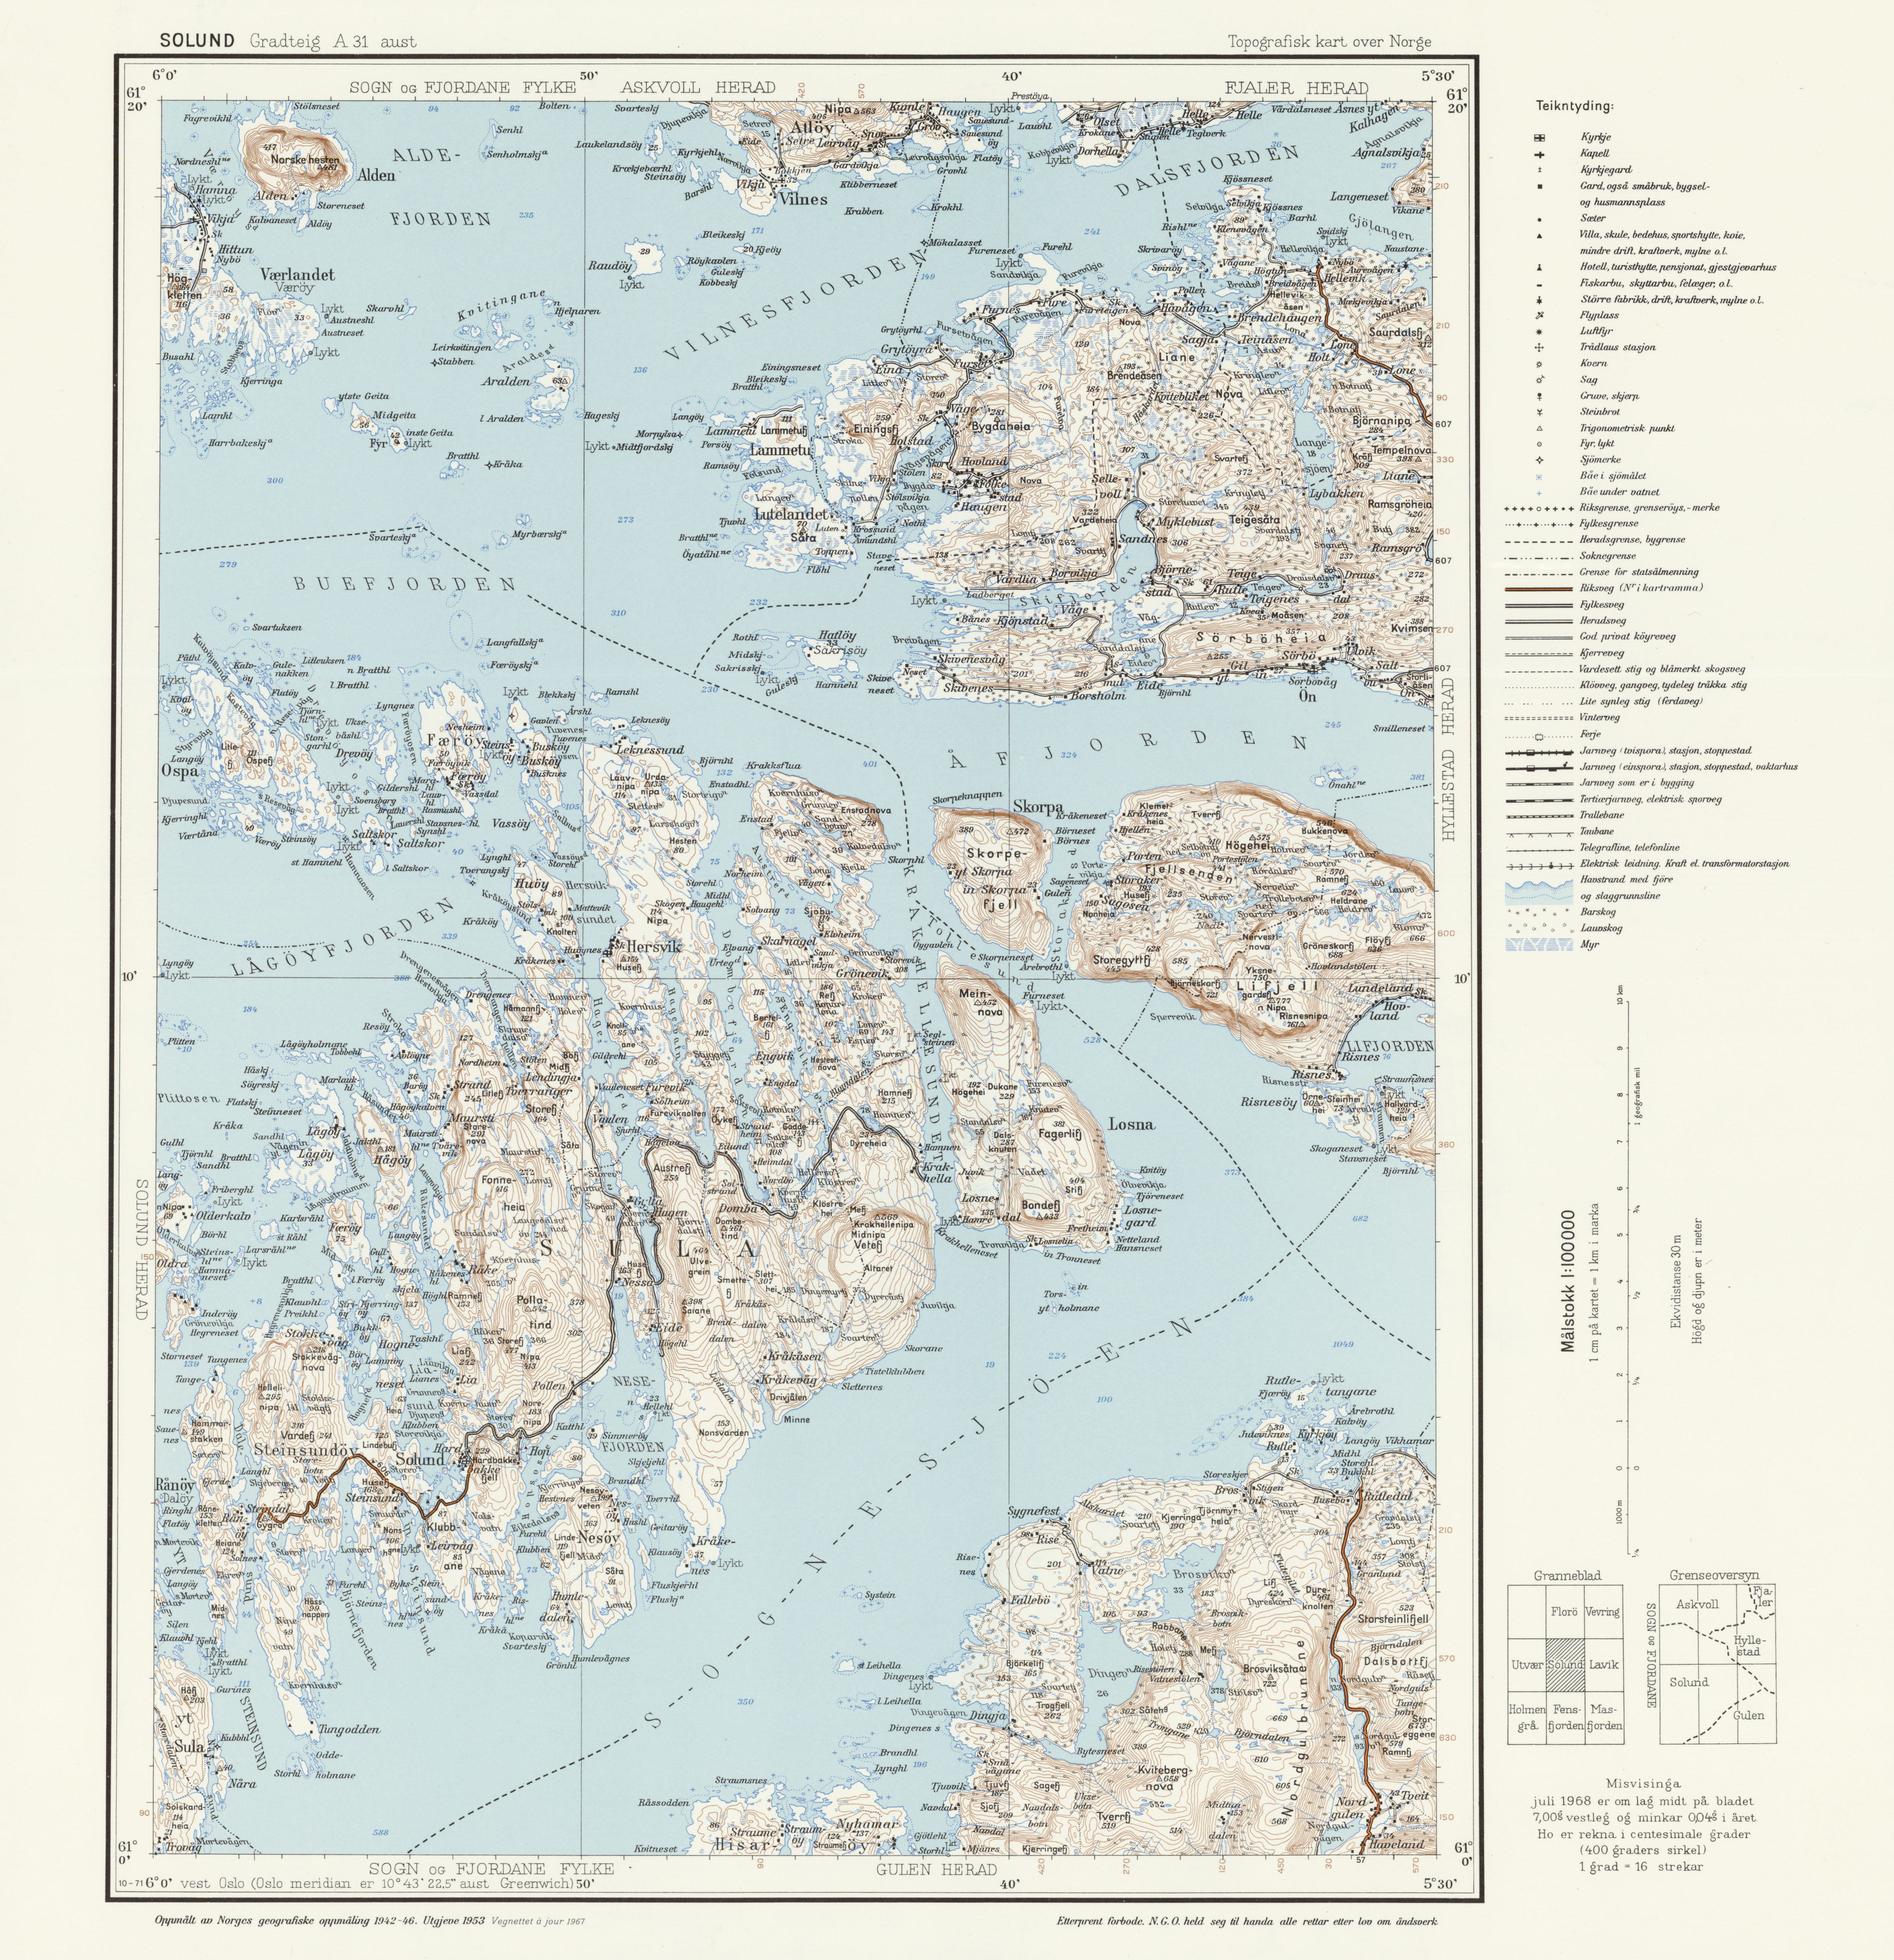 Topographic Map Of Norway.File Topographic Map Of Norway A31 Aust Solund 1967 Jpg